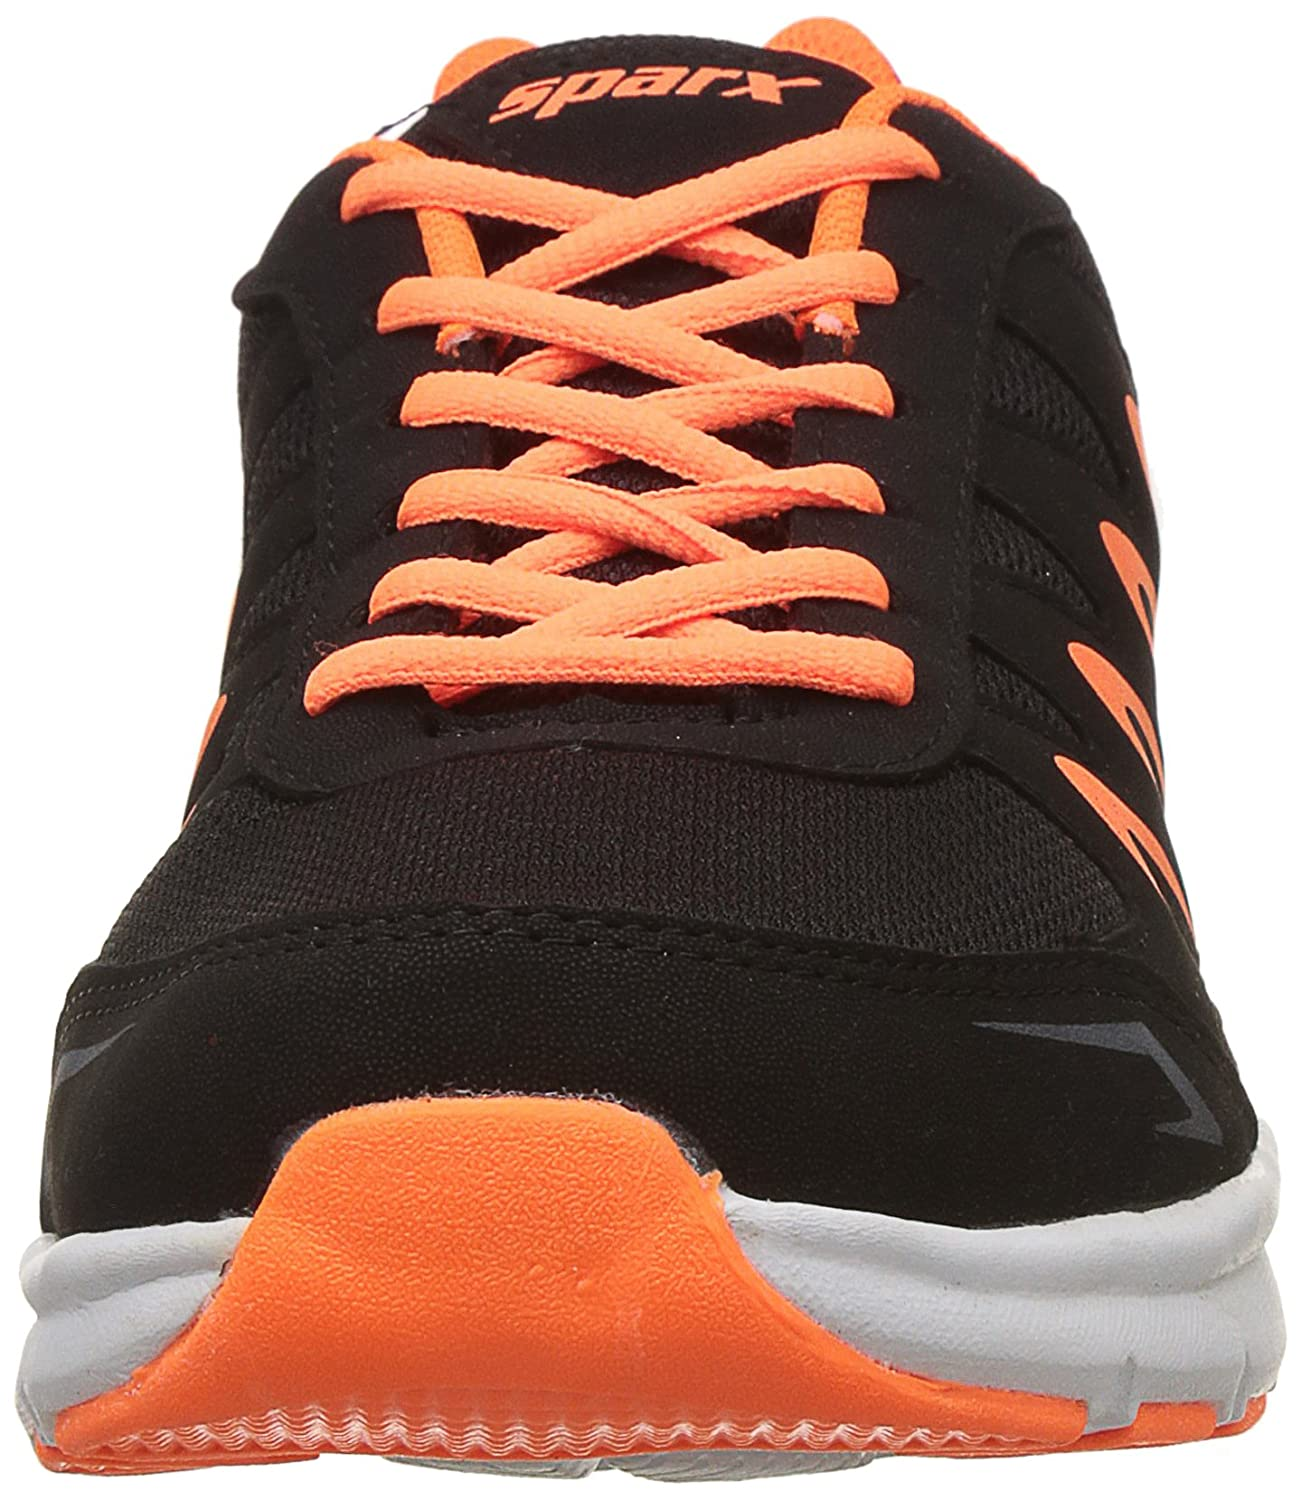 72fa9cc227d6 Sparx Men s Running Shoes  Buy Online at Low Prices in India - Amazon.in